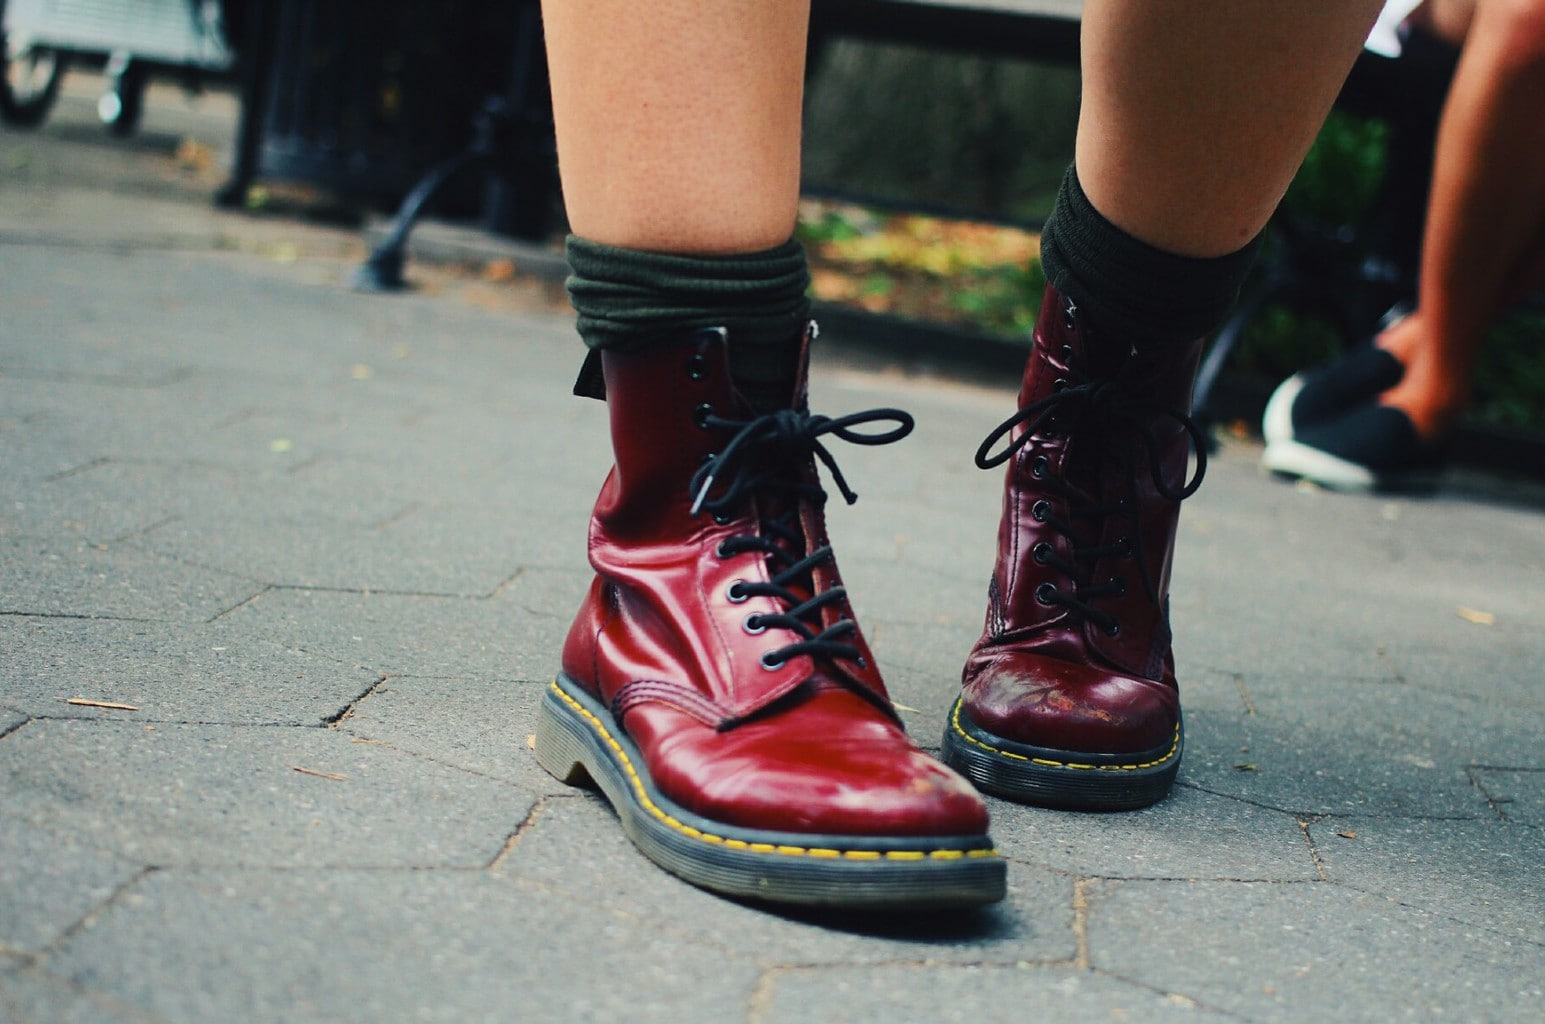 Fashion at School of Visual Arts, NYC - student Kaylee wears the latest college styles and trends, including Doc Martens maroon boots